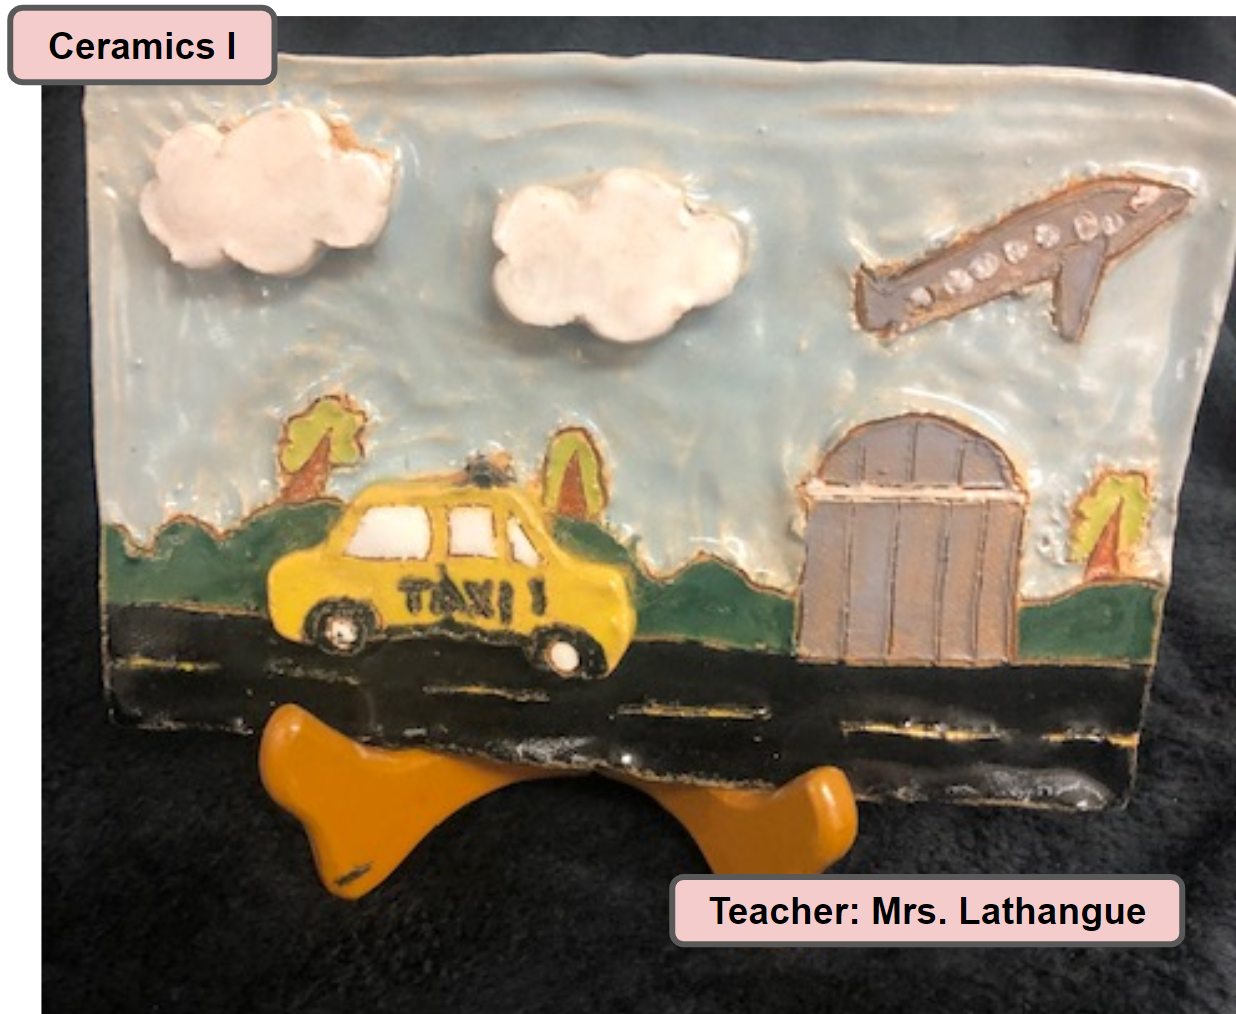 Ceramics One Art Class Project - Teacher Mrs. Lathangue - Cityscape